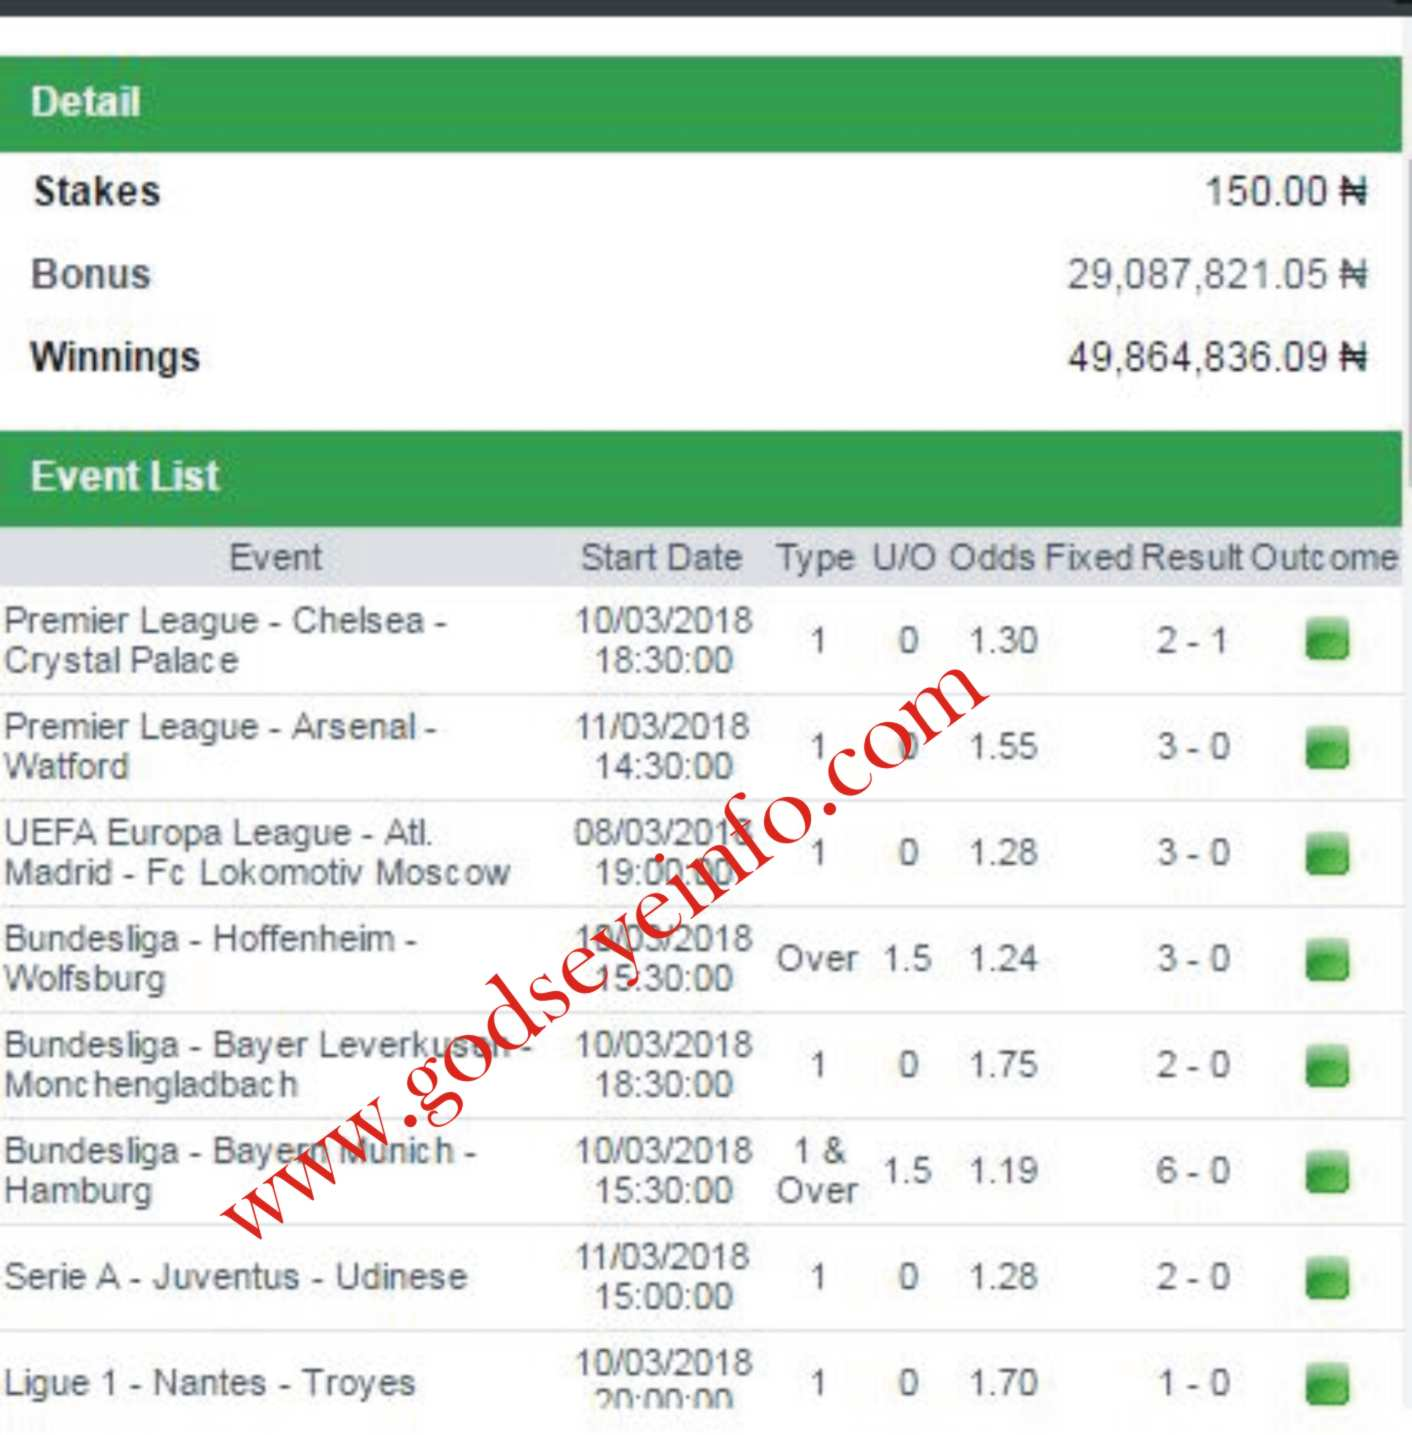 A YOUNG MAN HITS N49,864,836 09 WINING FROM BET9JA - GODS